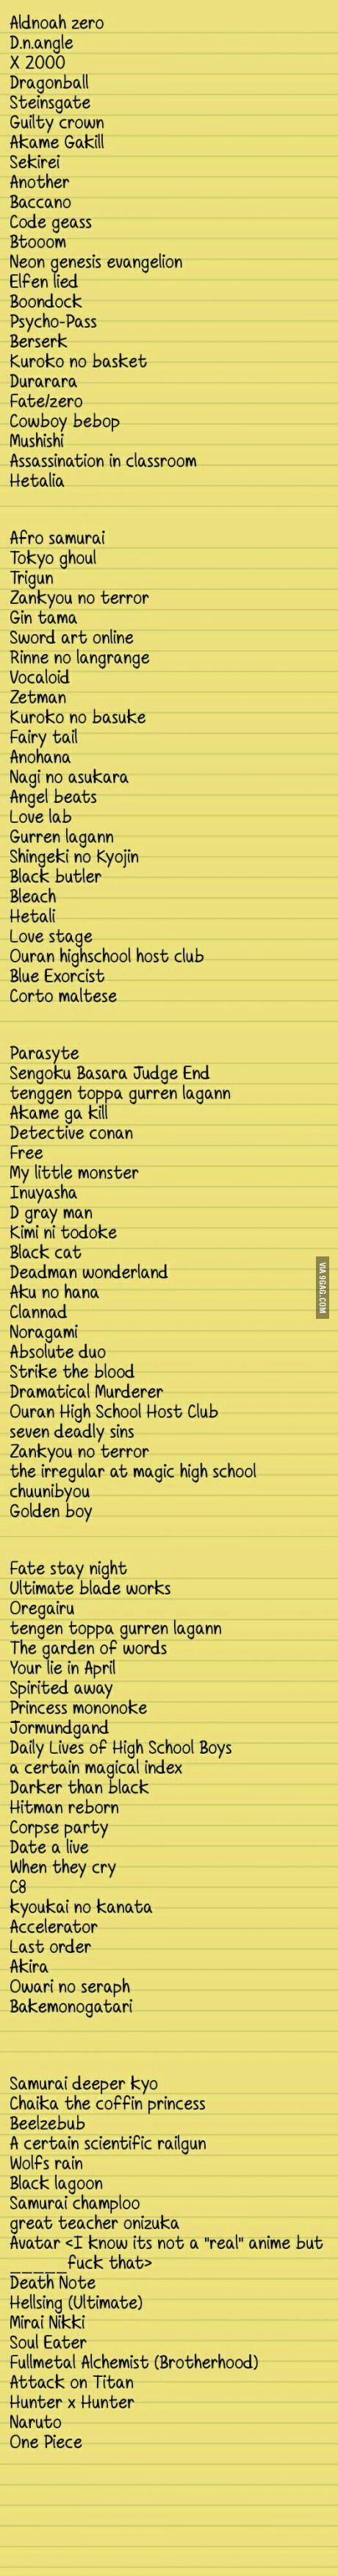 For all anime fans who don't know what to watch next...